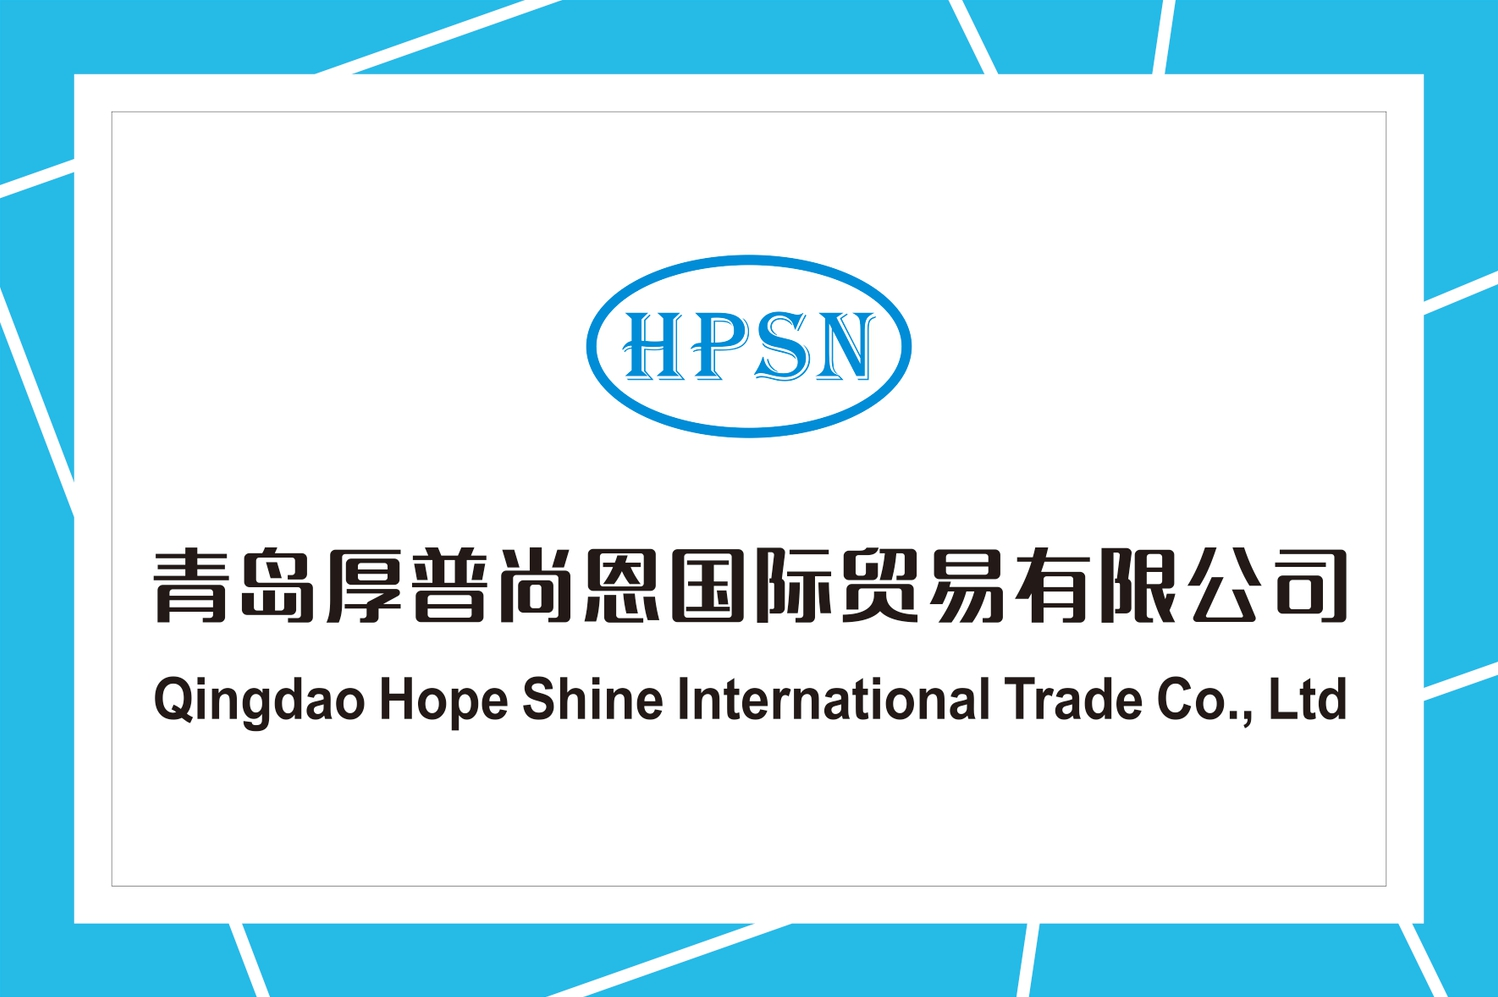 Qingdao Hope Shine International Trade Co., Ltd